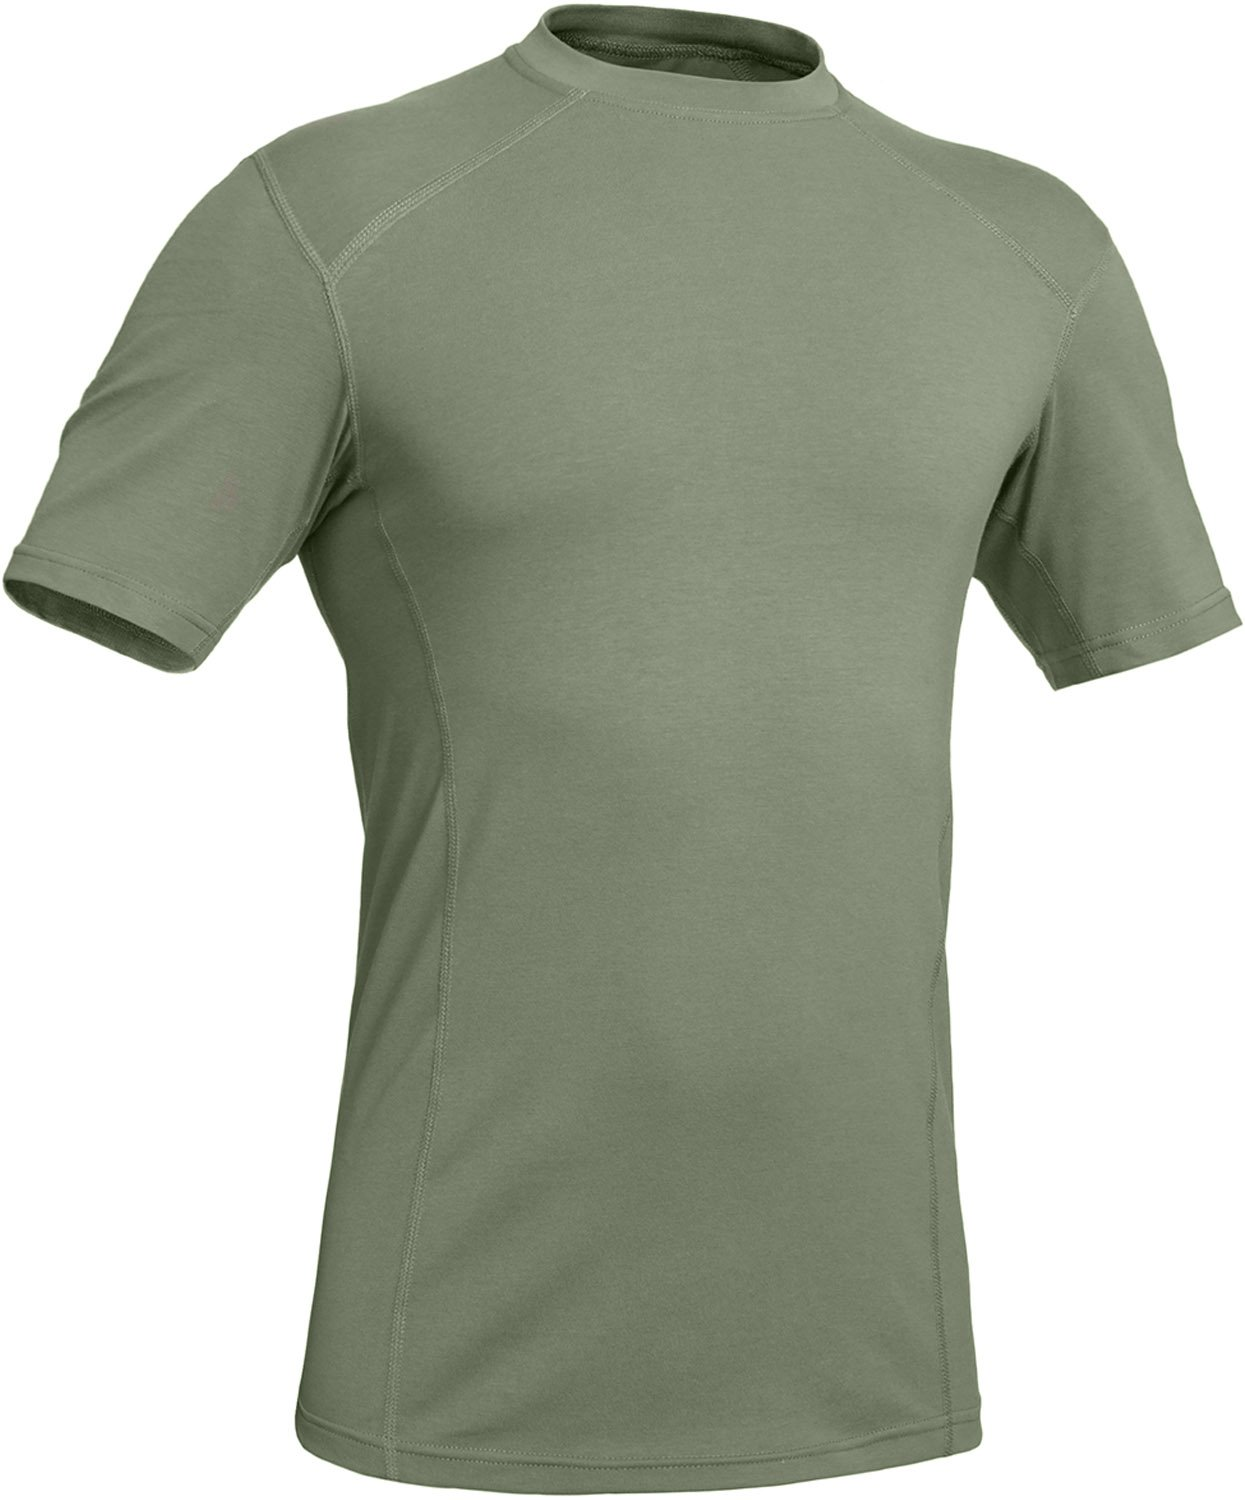 281Z Military Stretch Cotton Underwear T-Shirt - Tactical Hiking Outdoor - Punisher Combat Line (Olive Drab, Medium)